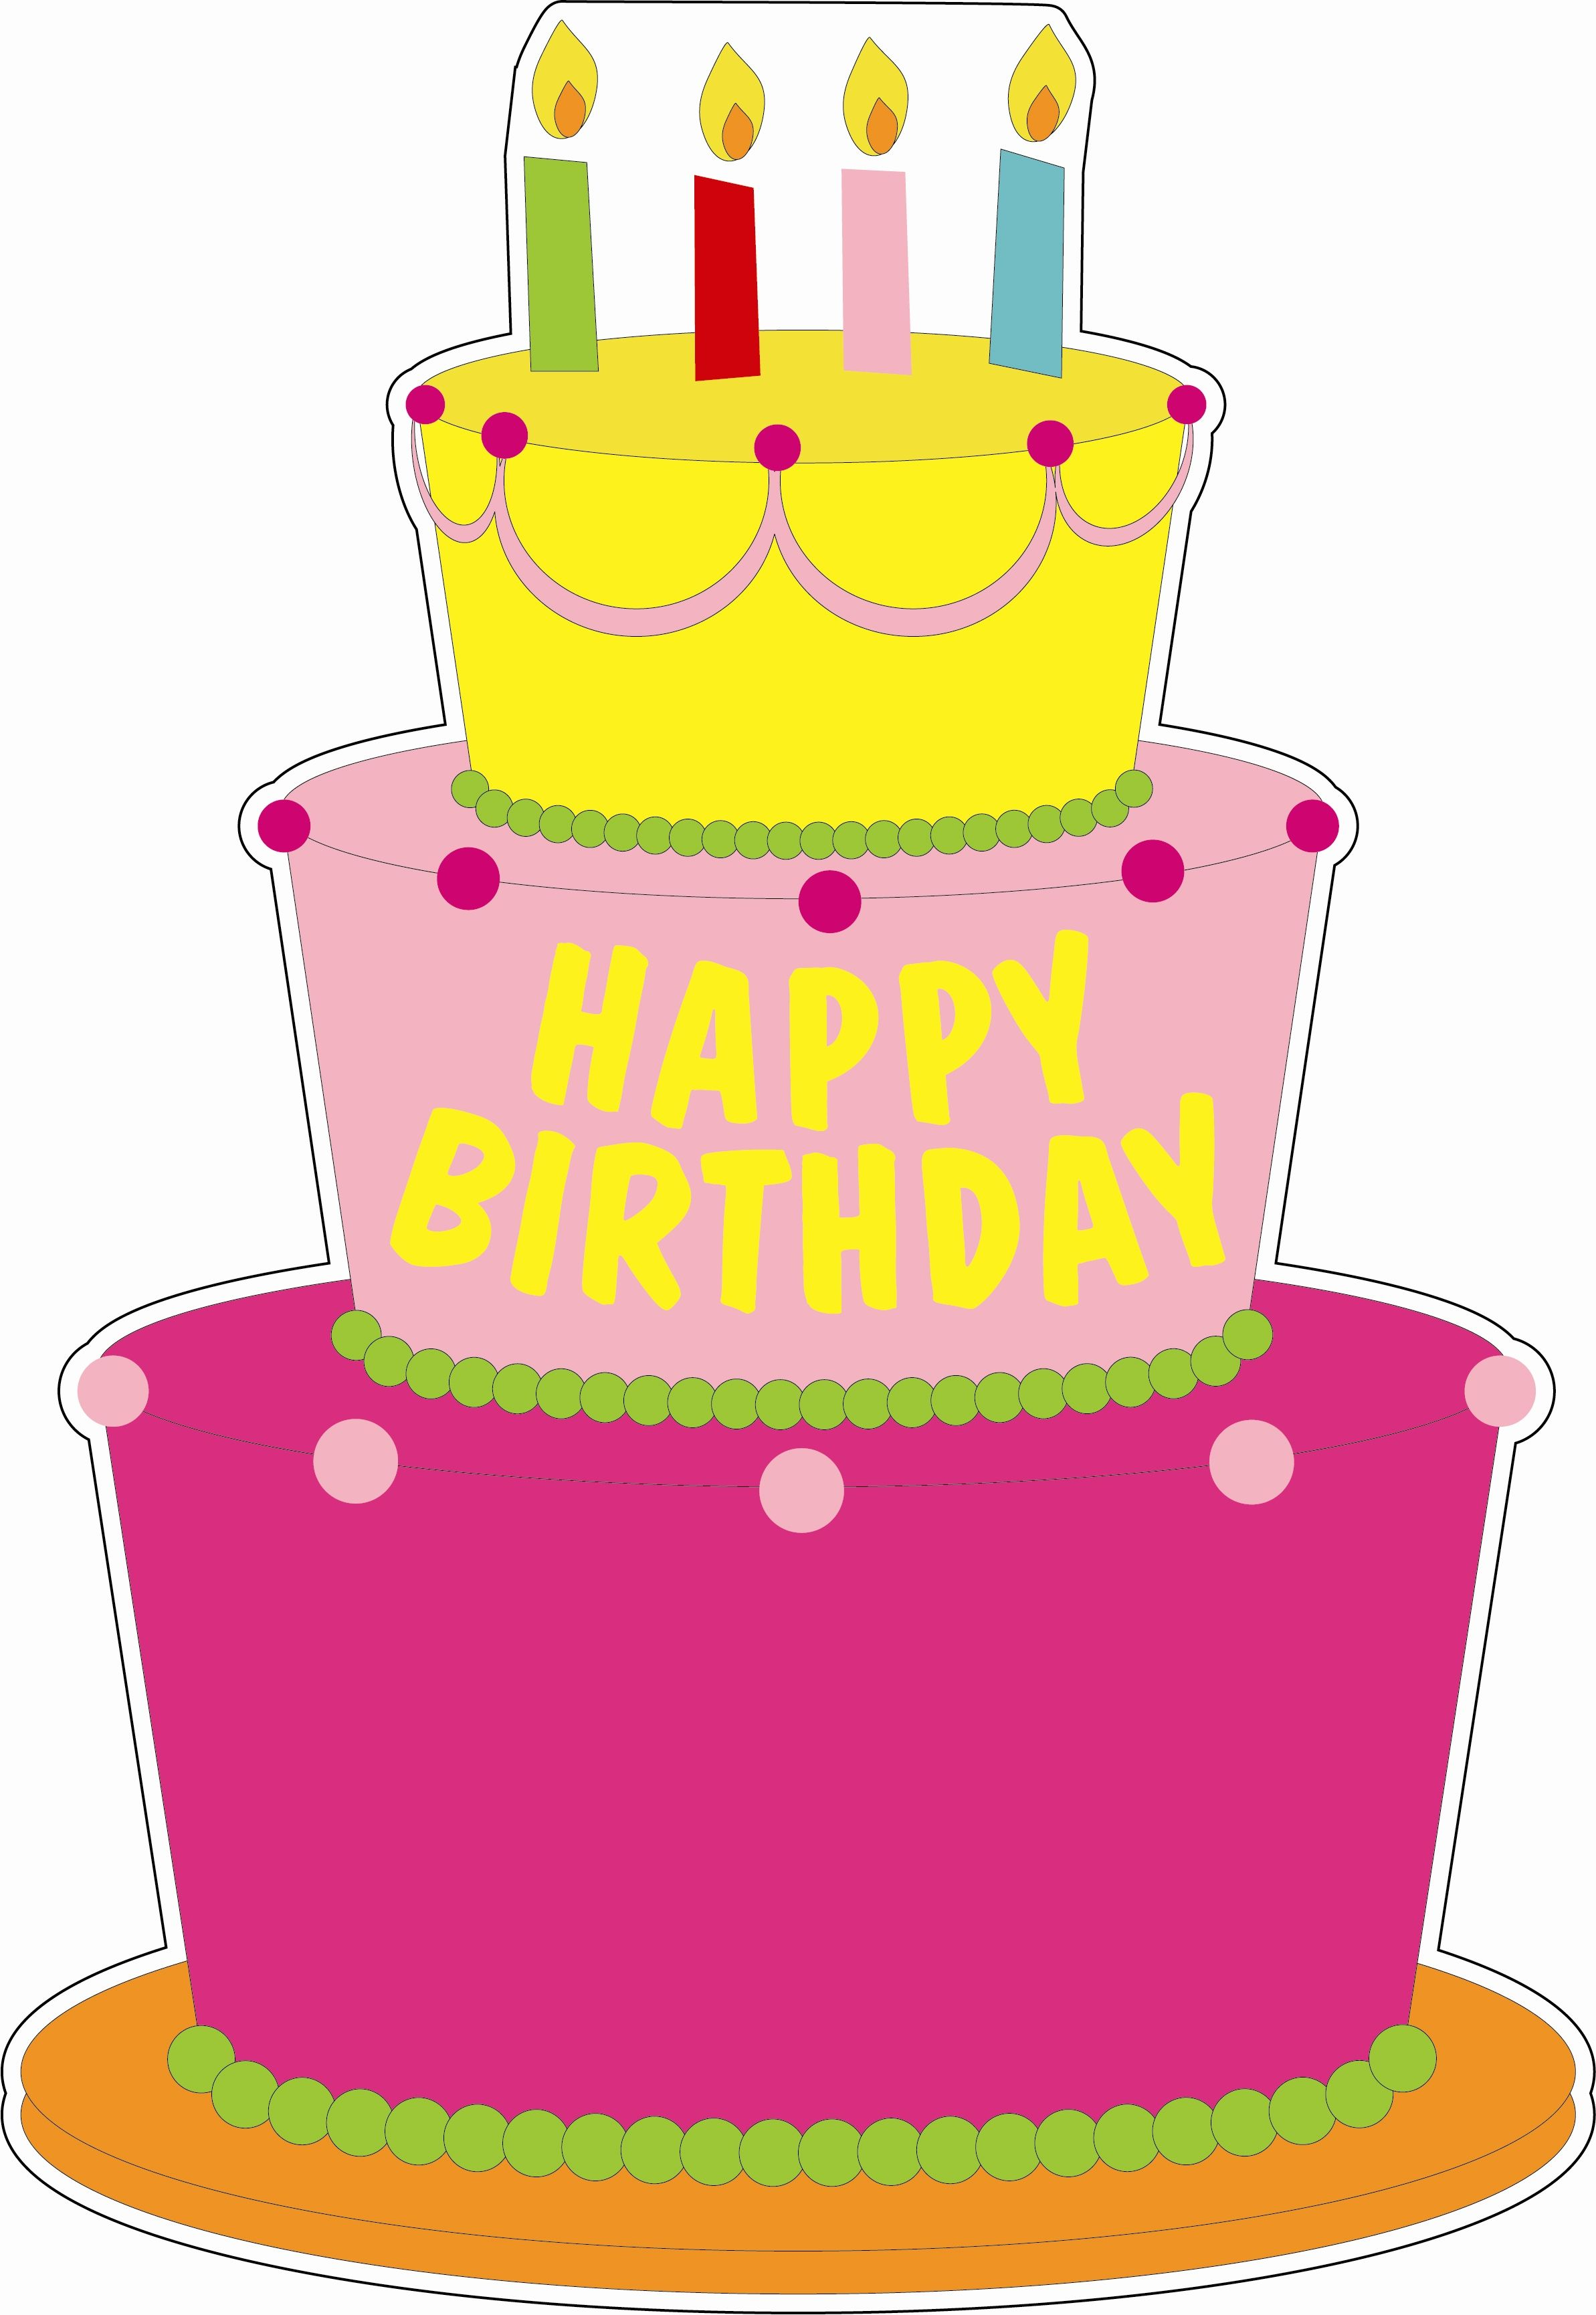 Fantastic Birthday Cake Cartoon Google Search Cartoon Birthday Cake Funny Birthday Cards Online Inifodamsfinfo